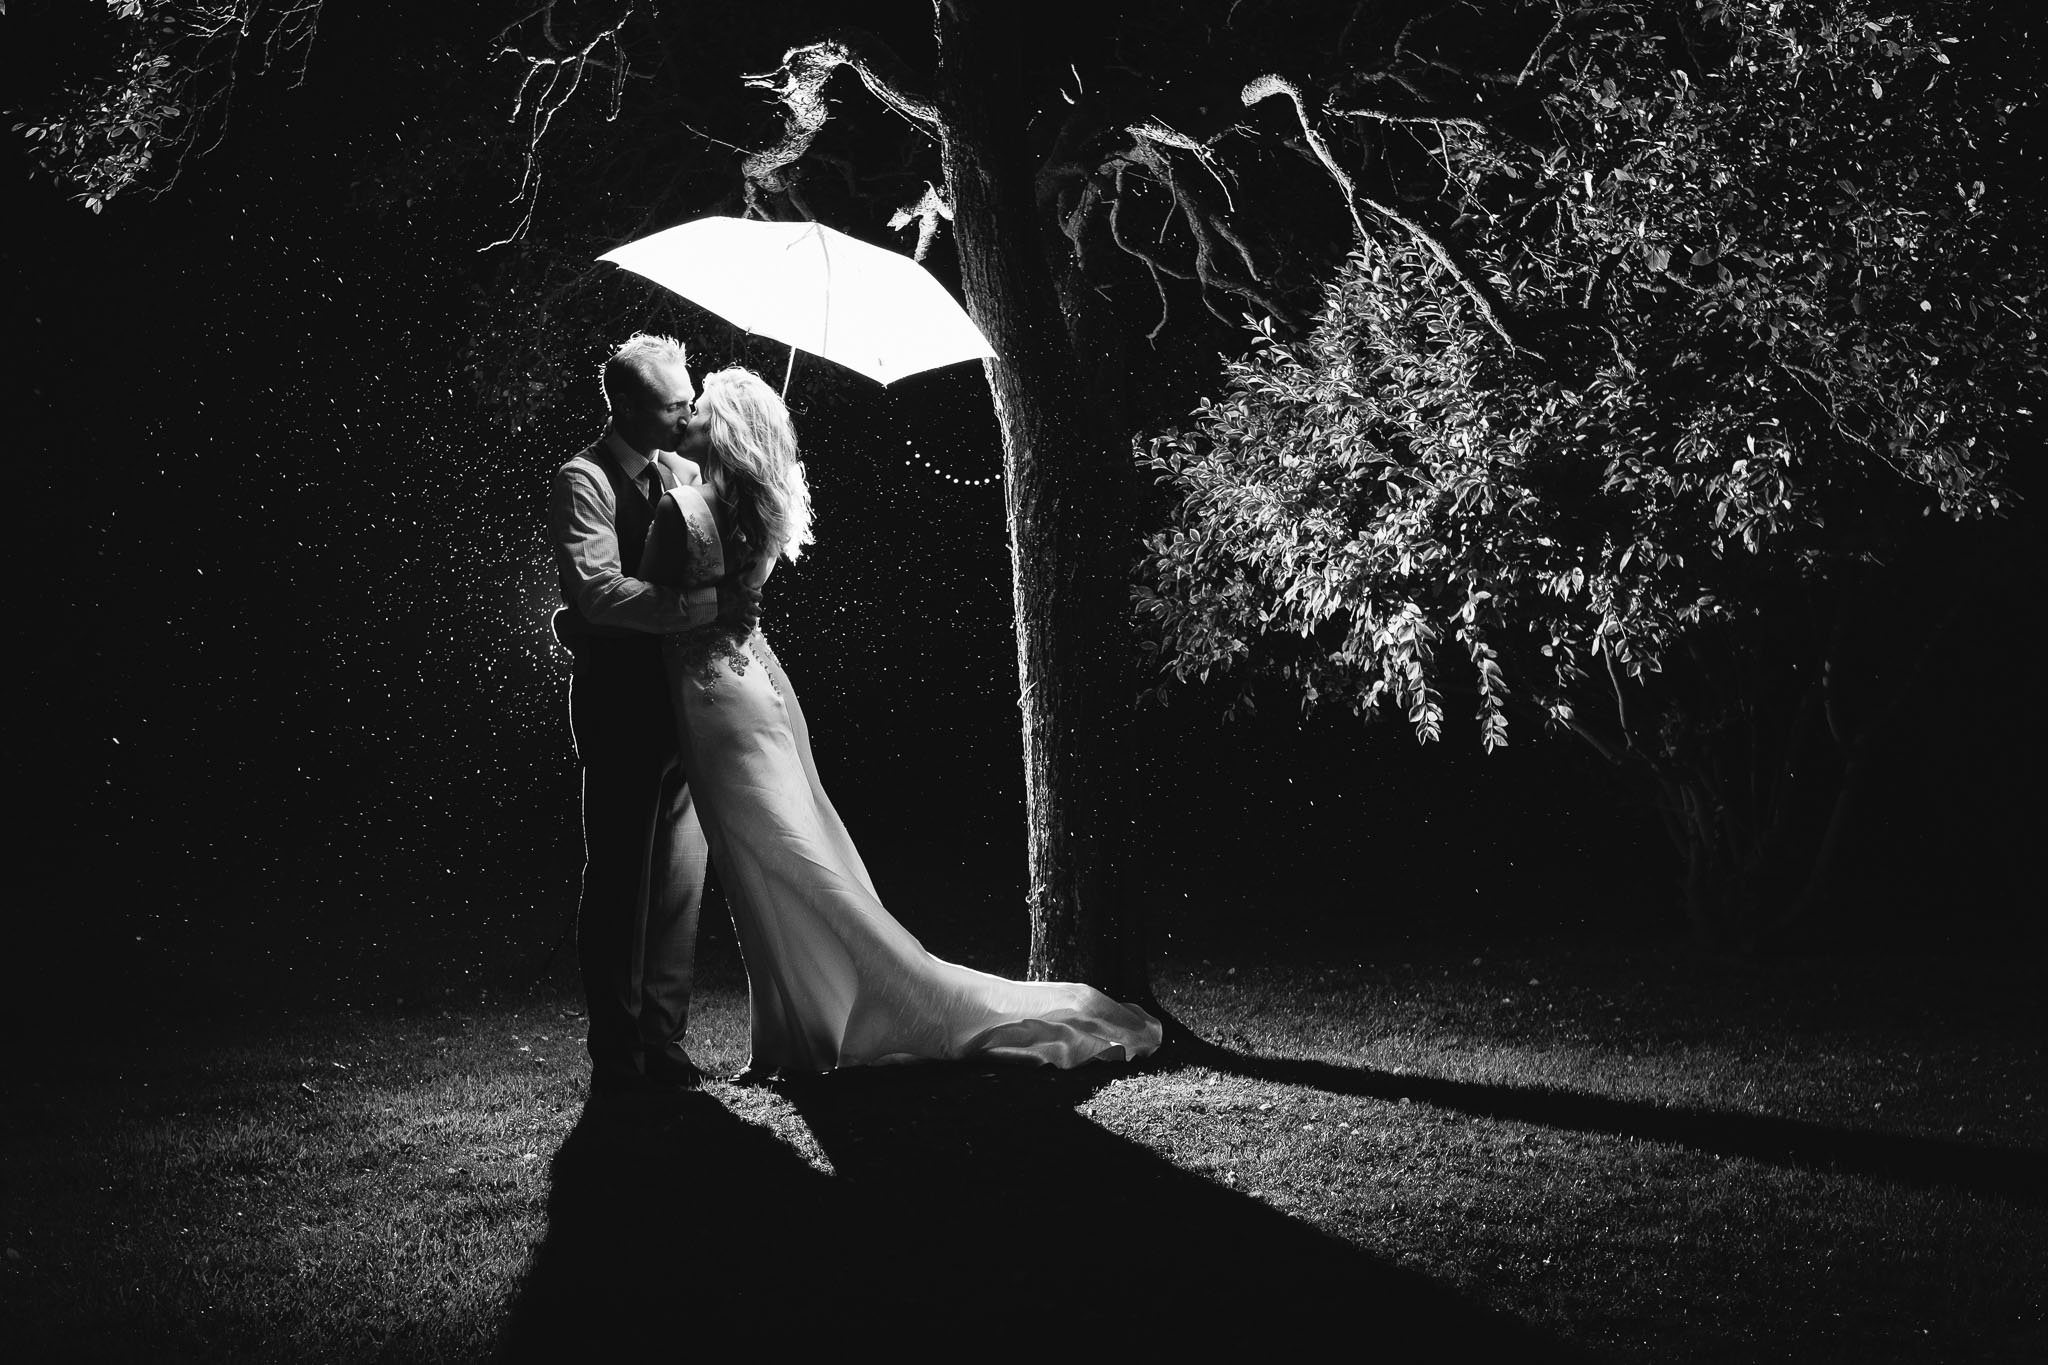 Rain on your wedding day doesn't have to mean boring wedding photos